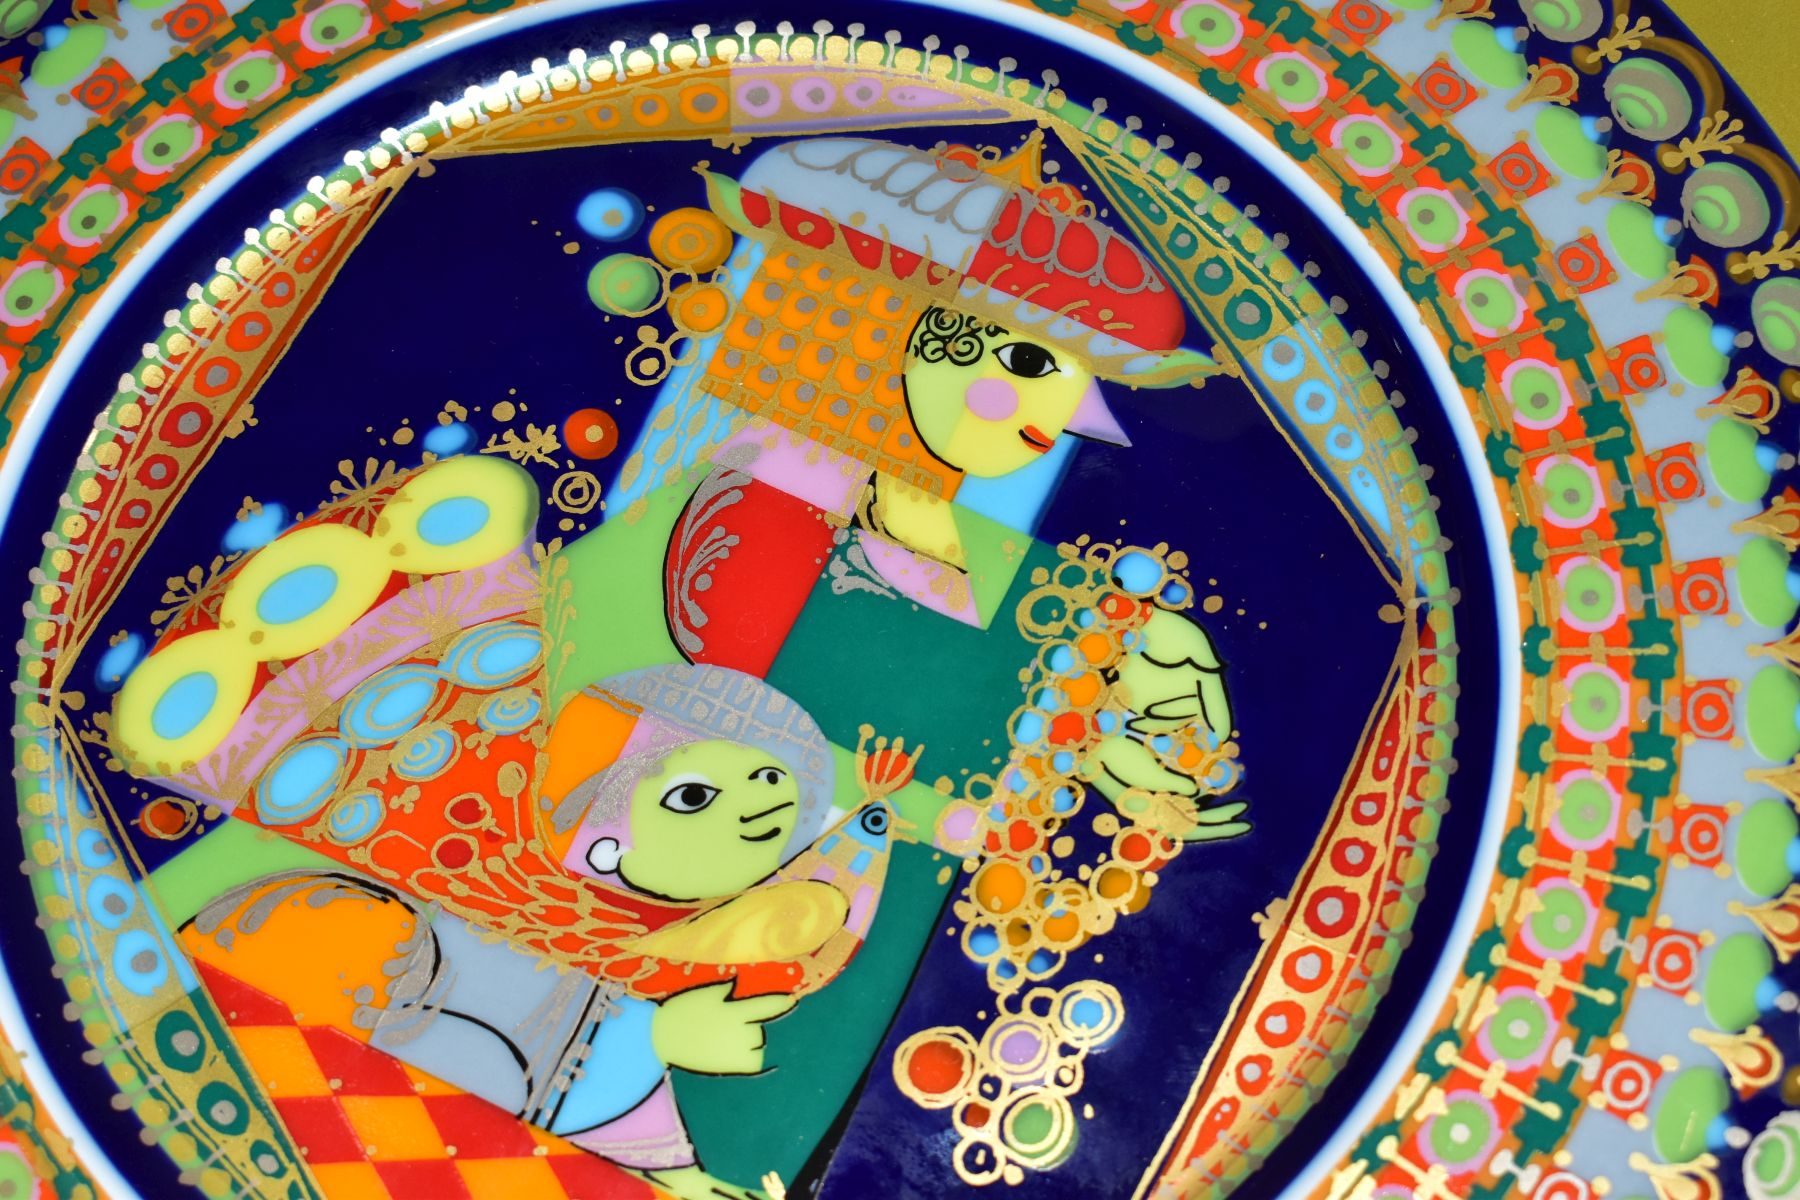 THREE BOXED ROSENTHAL CHRISTMAS PLATES, 1973, 1974 and 1975 all signed by Bijorn Wiinbald - Image 7 of 12